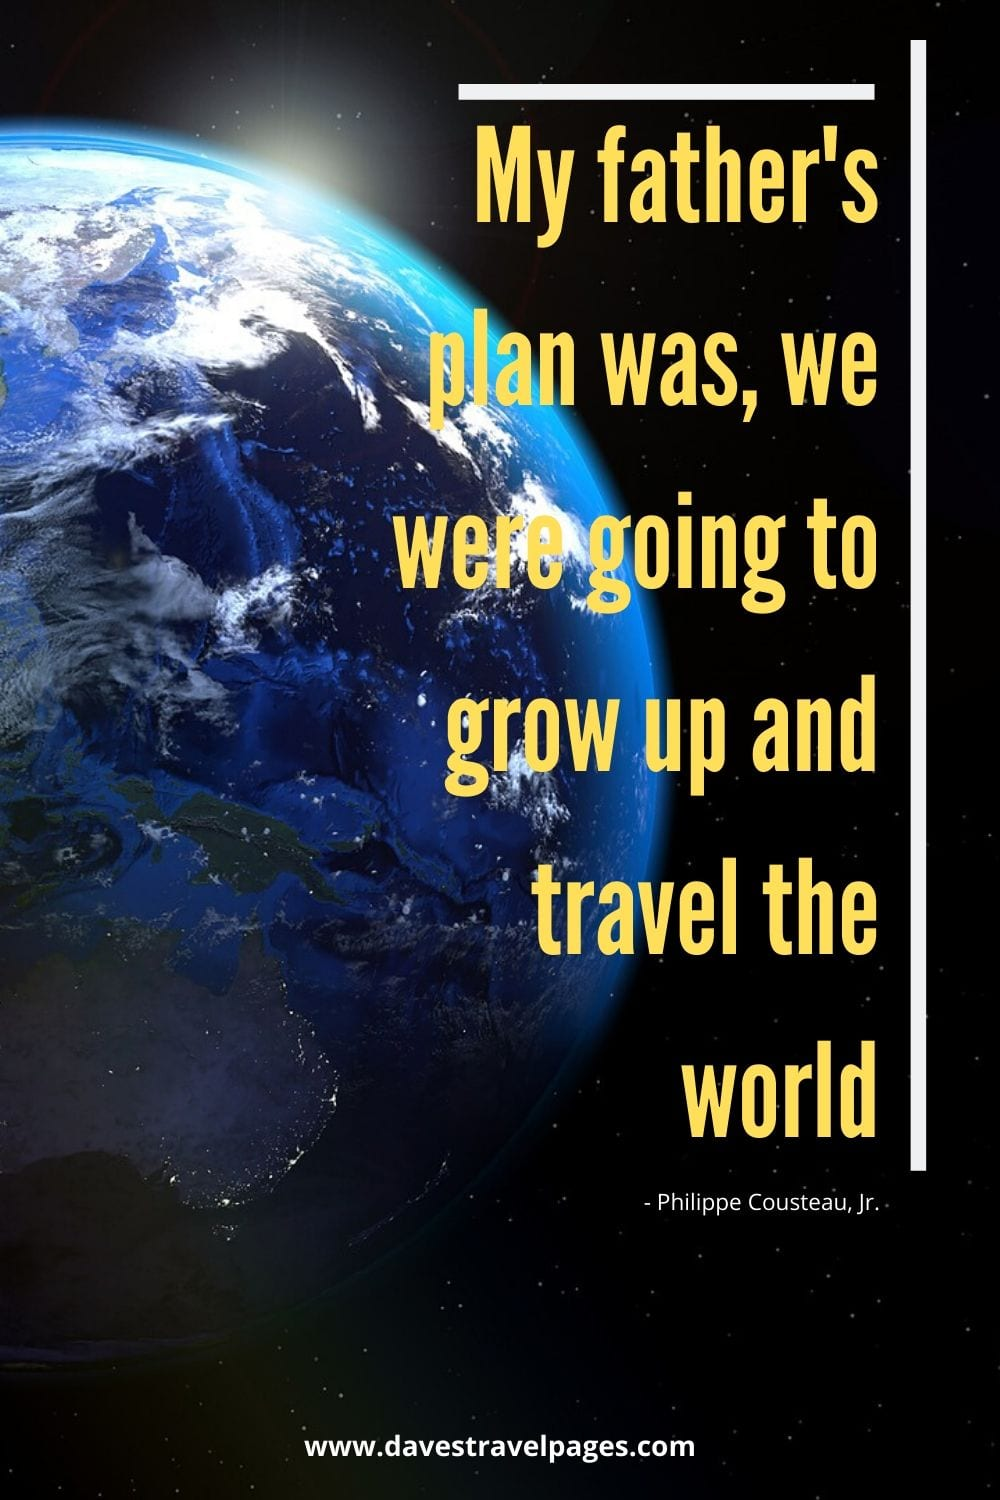 My father's plan was, we were going to grow up and travel the world. Philippe Cousteau, Jr.